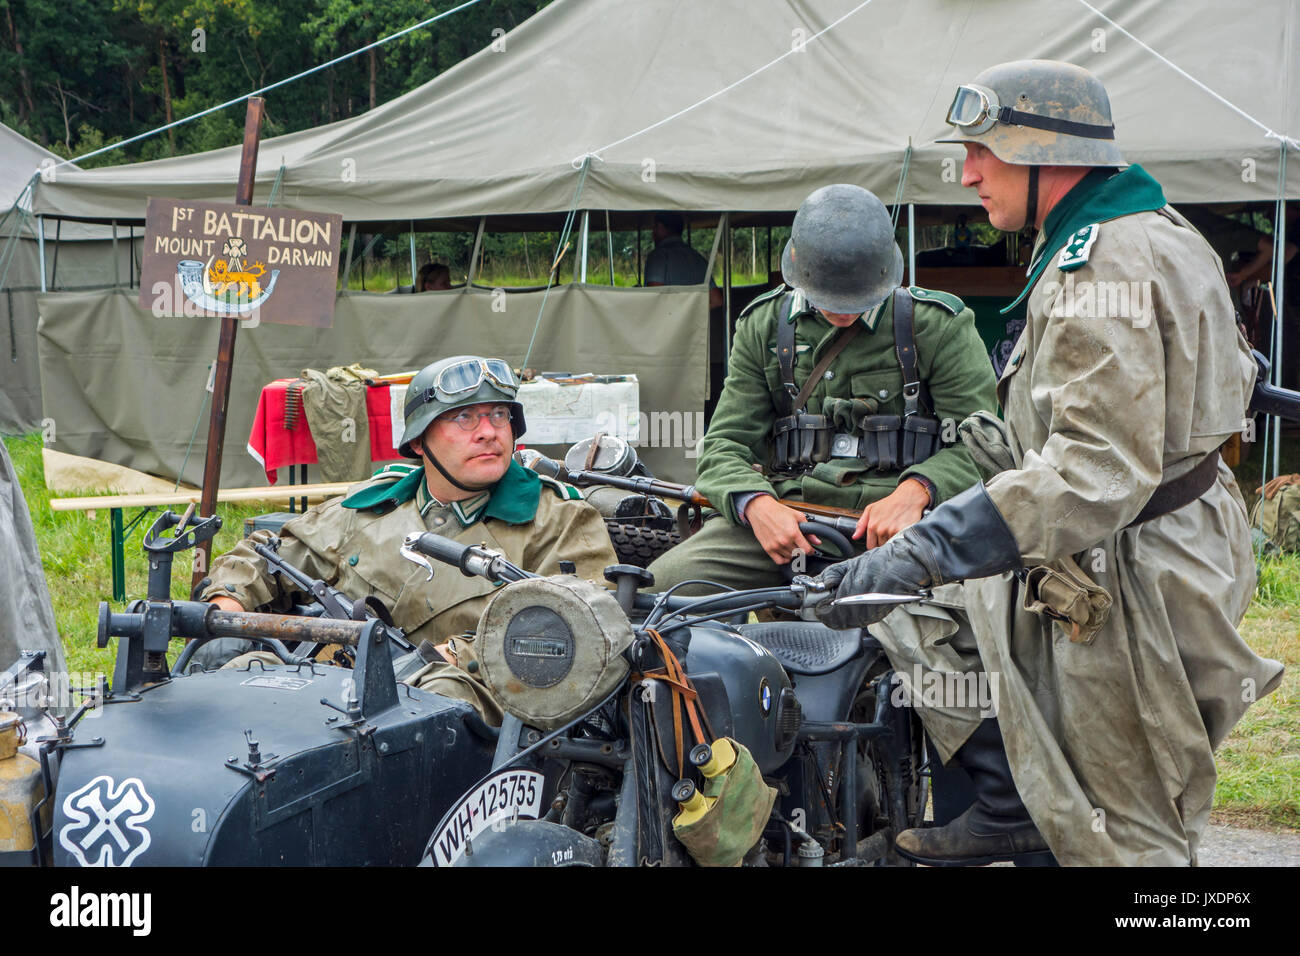 Re-enactors in German WW2 soldier outfits on BMW military motorcycle with sidecar during World War Two re-enactment at militaria fair - Stock Image